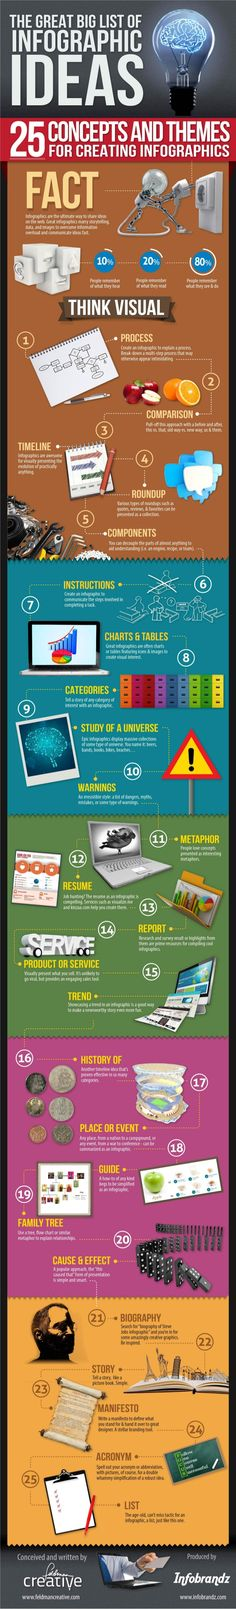 The great big list of infographic ideas #infographic